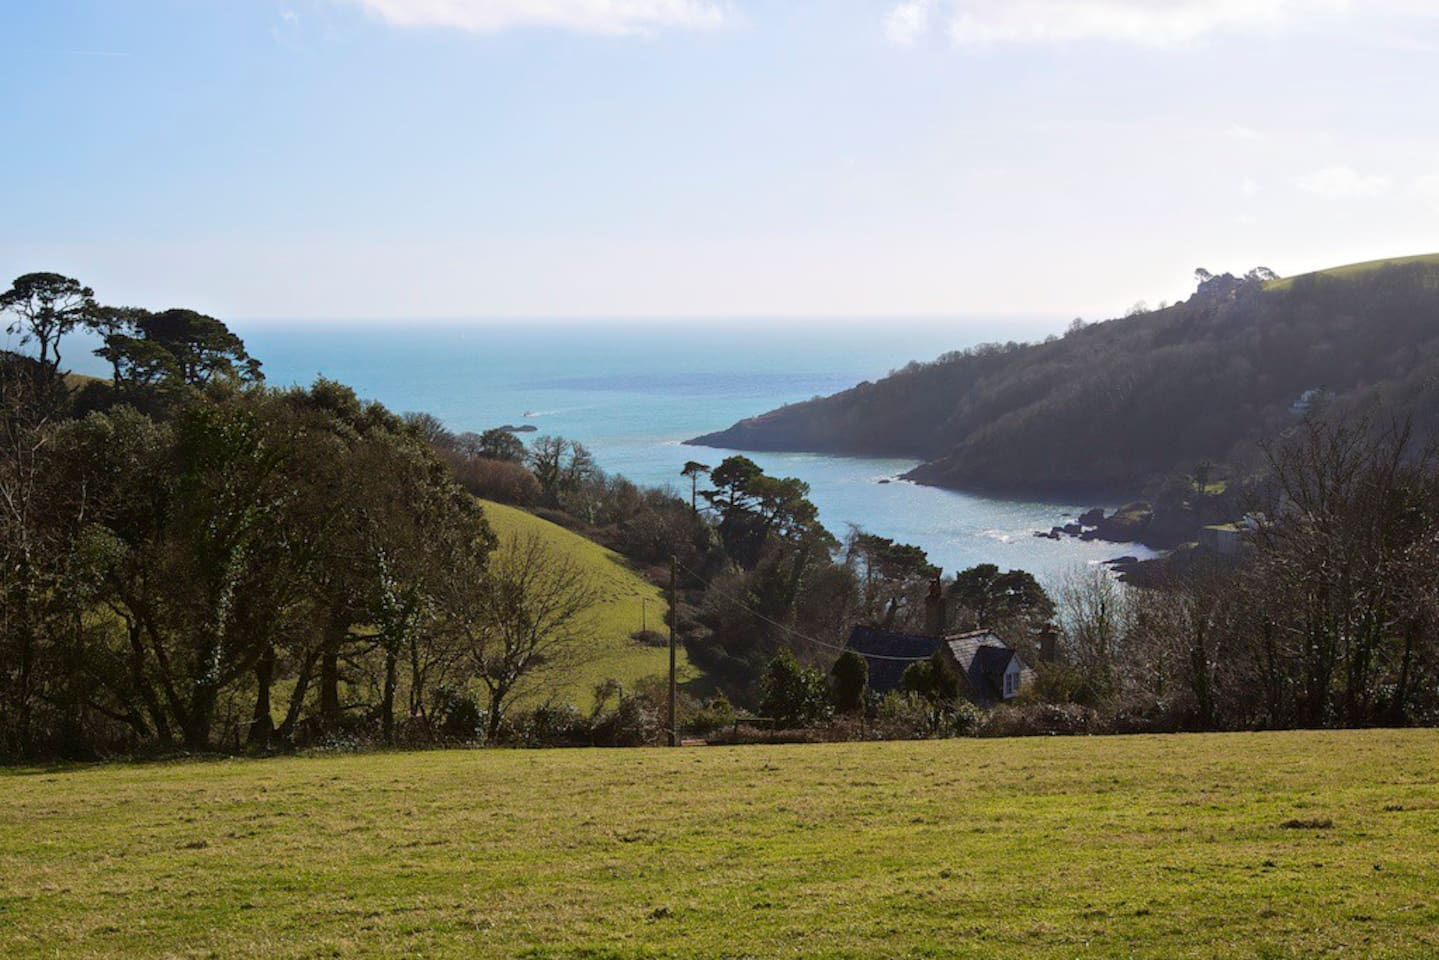 Walk or picnic on the farm with your own private and outstanding view of the River Dart.